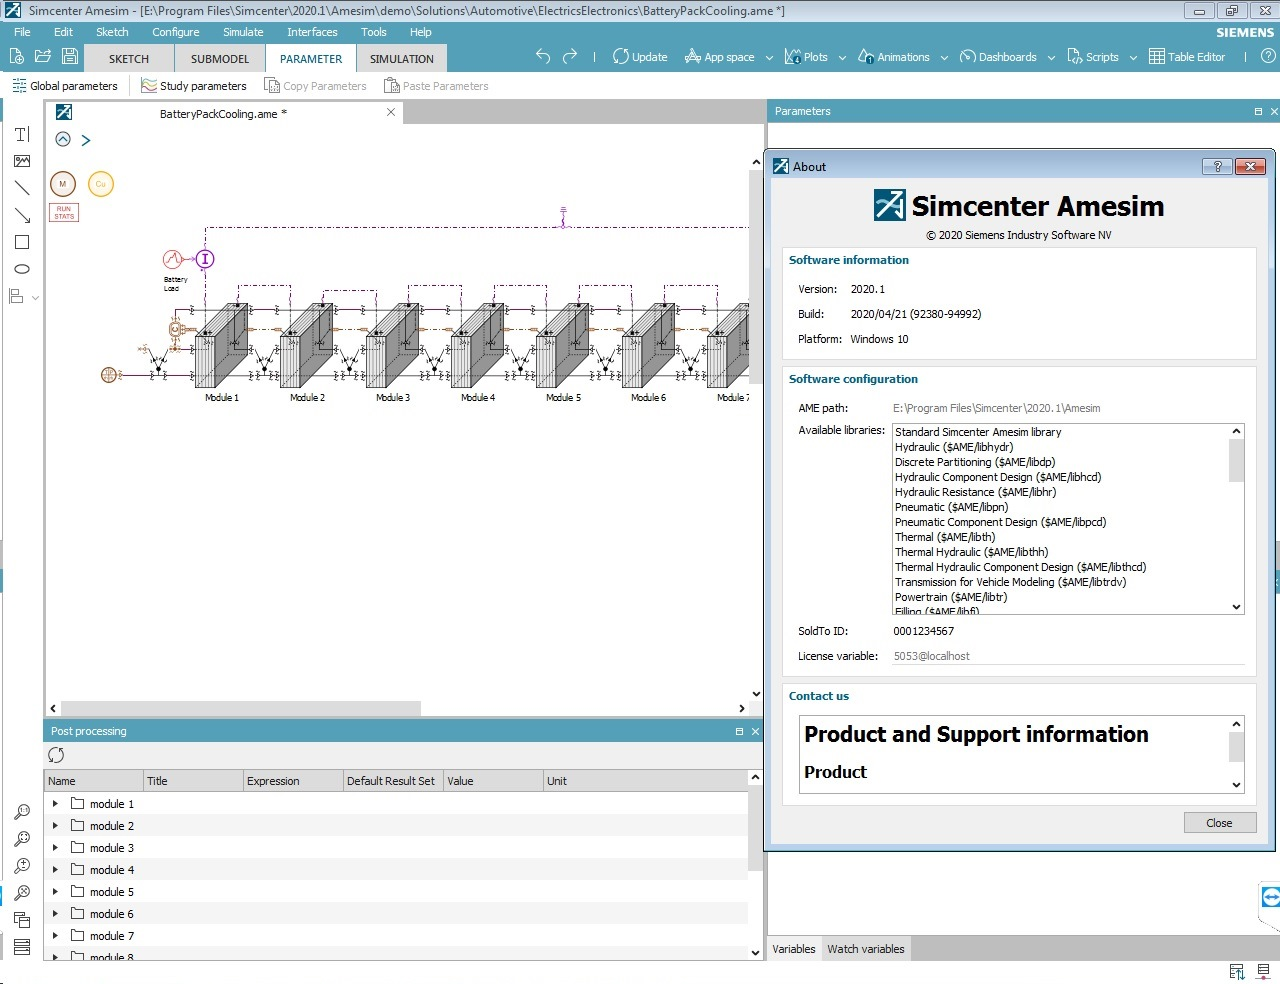 Working with Siemens Simcenter Amesim 2020.1.0 full license